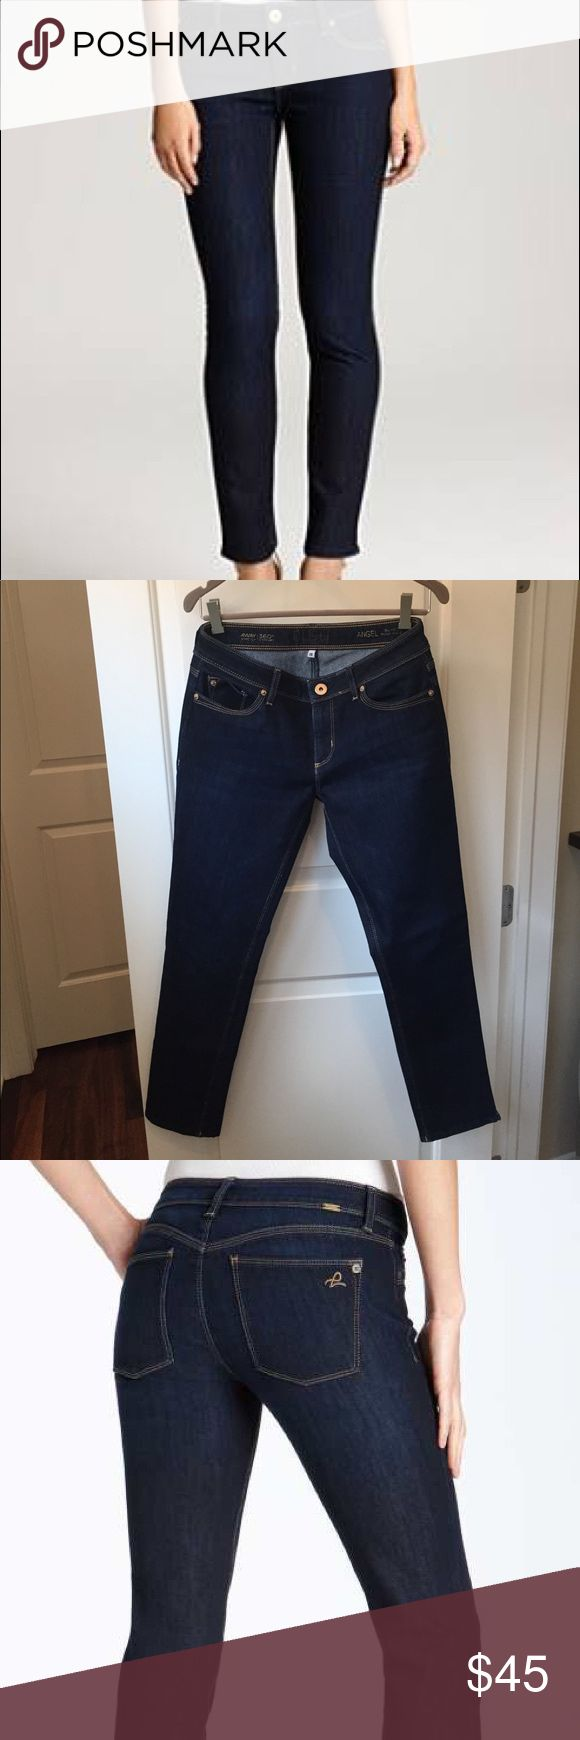 """DL1961 Angel Ankle Cigarette Jeans, Size 28 DL1961 Angel Ankle Cigarette Jeans, Size 28. Color is Mariner. Cute 1"""" notch at hem on each side. Great condition! Barely worn. DL1961 Jeans Ankle & Cropped"""